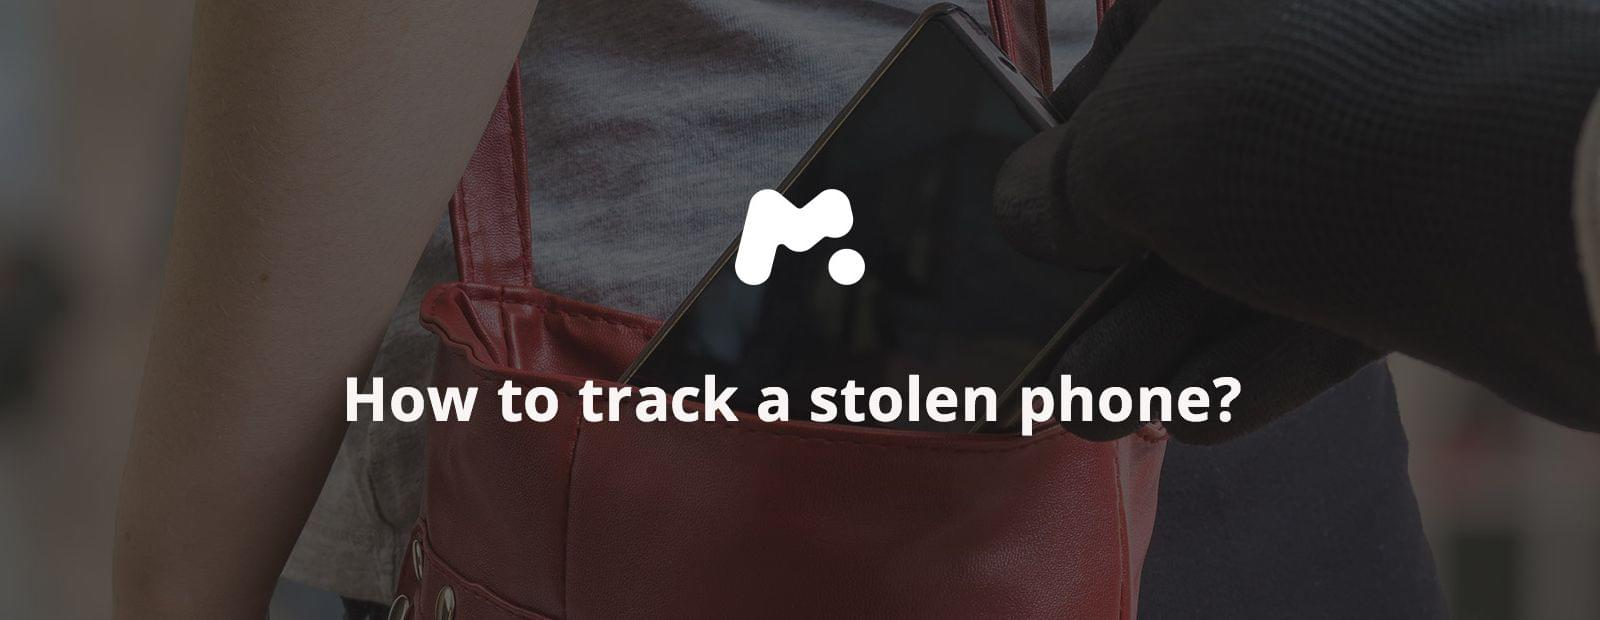 How to track a stolen phone?